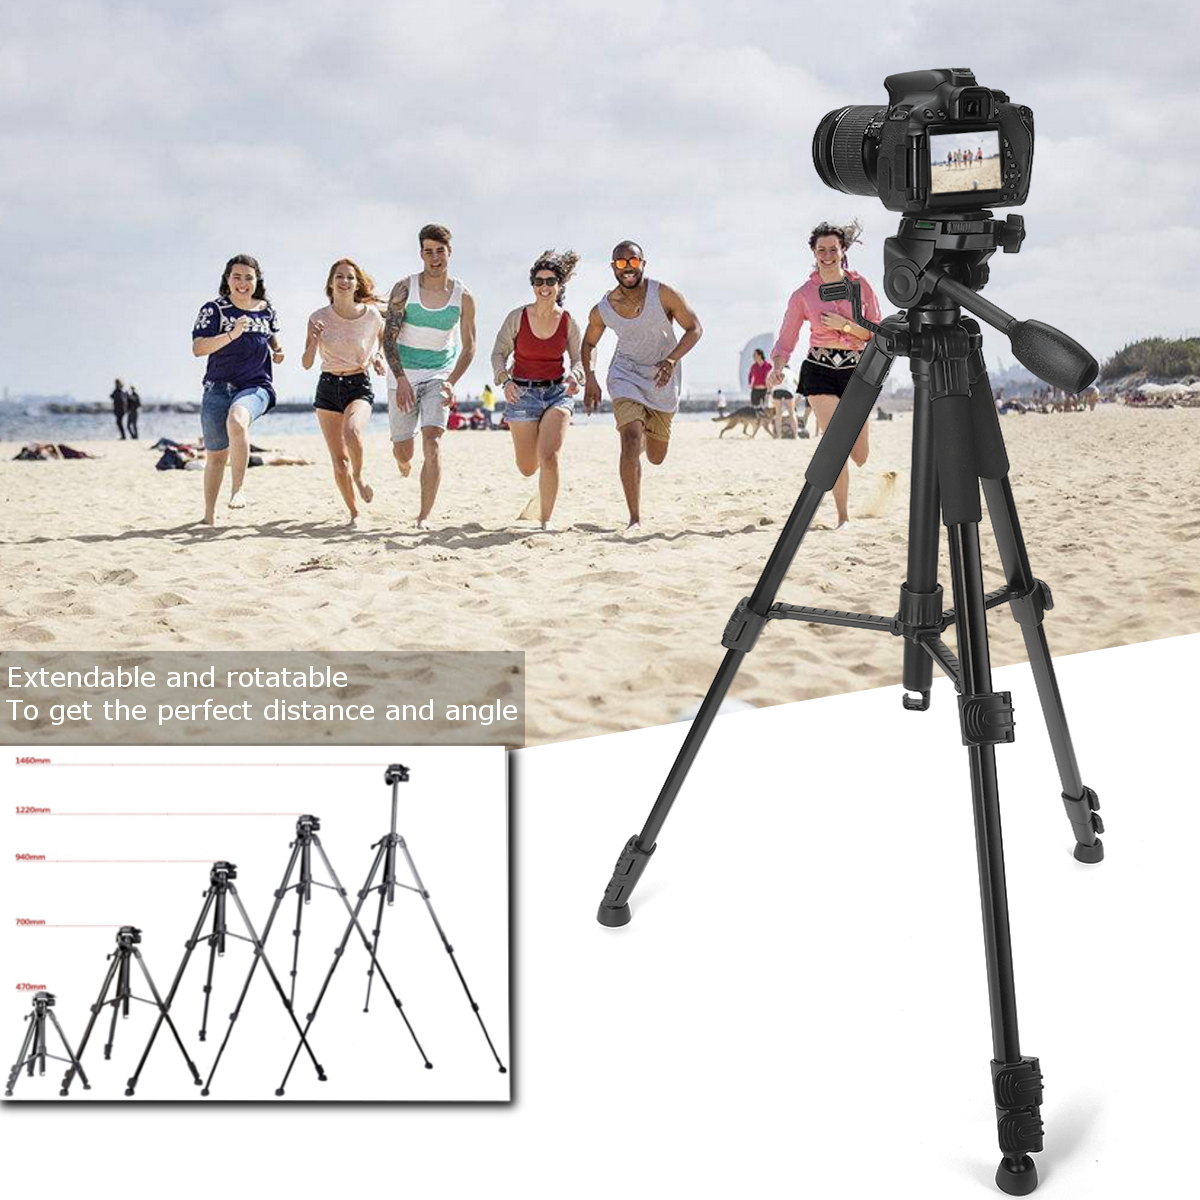 Maximum Tripod Load 3kg Aluminum+ABS Adjustable Monopod Telescopic Tripod Stand Holder Fit For DSLR Camera Camcorders Black low price monitor head tripod camera telescope mini stand adjustable tripod free shipping